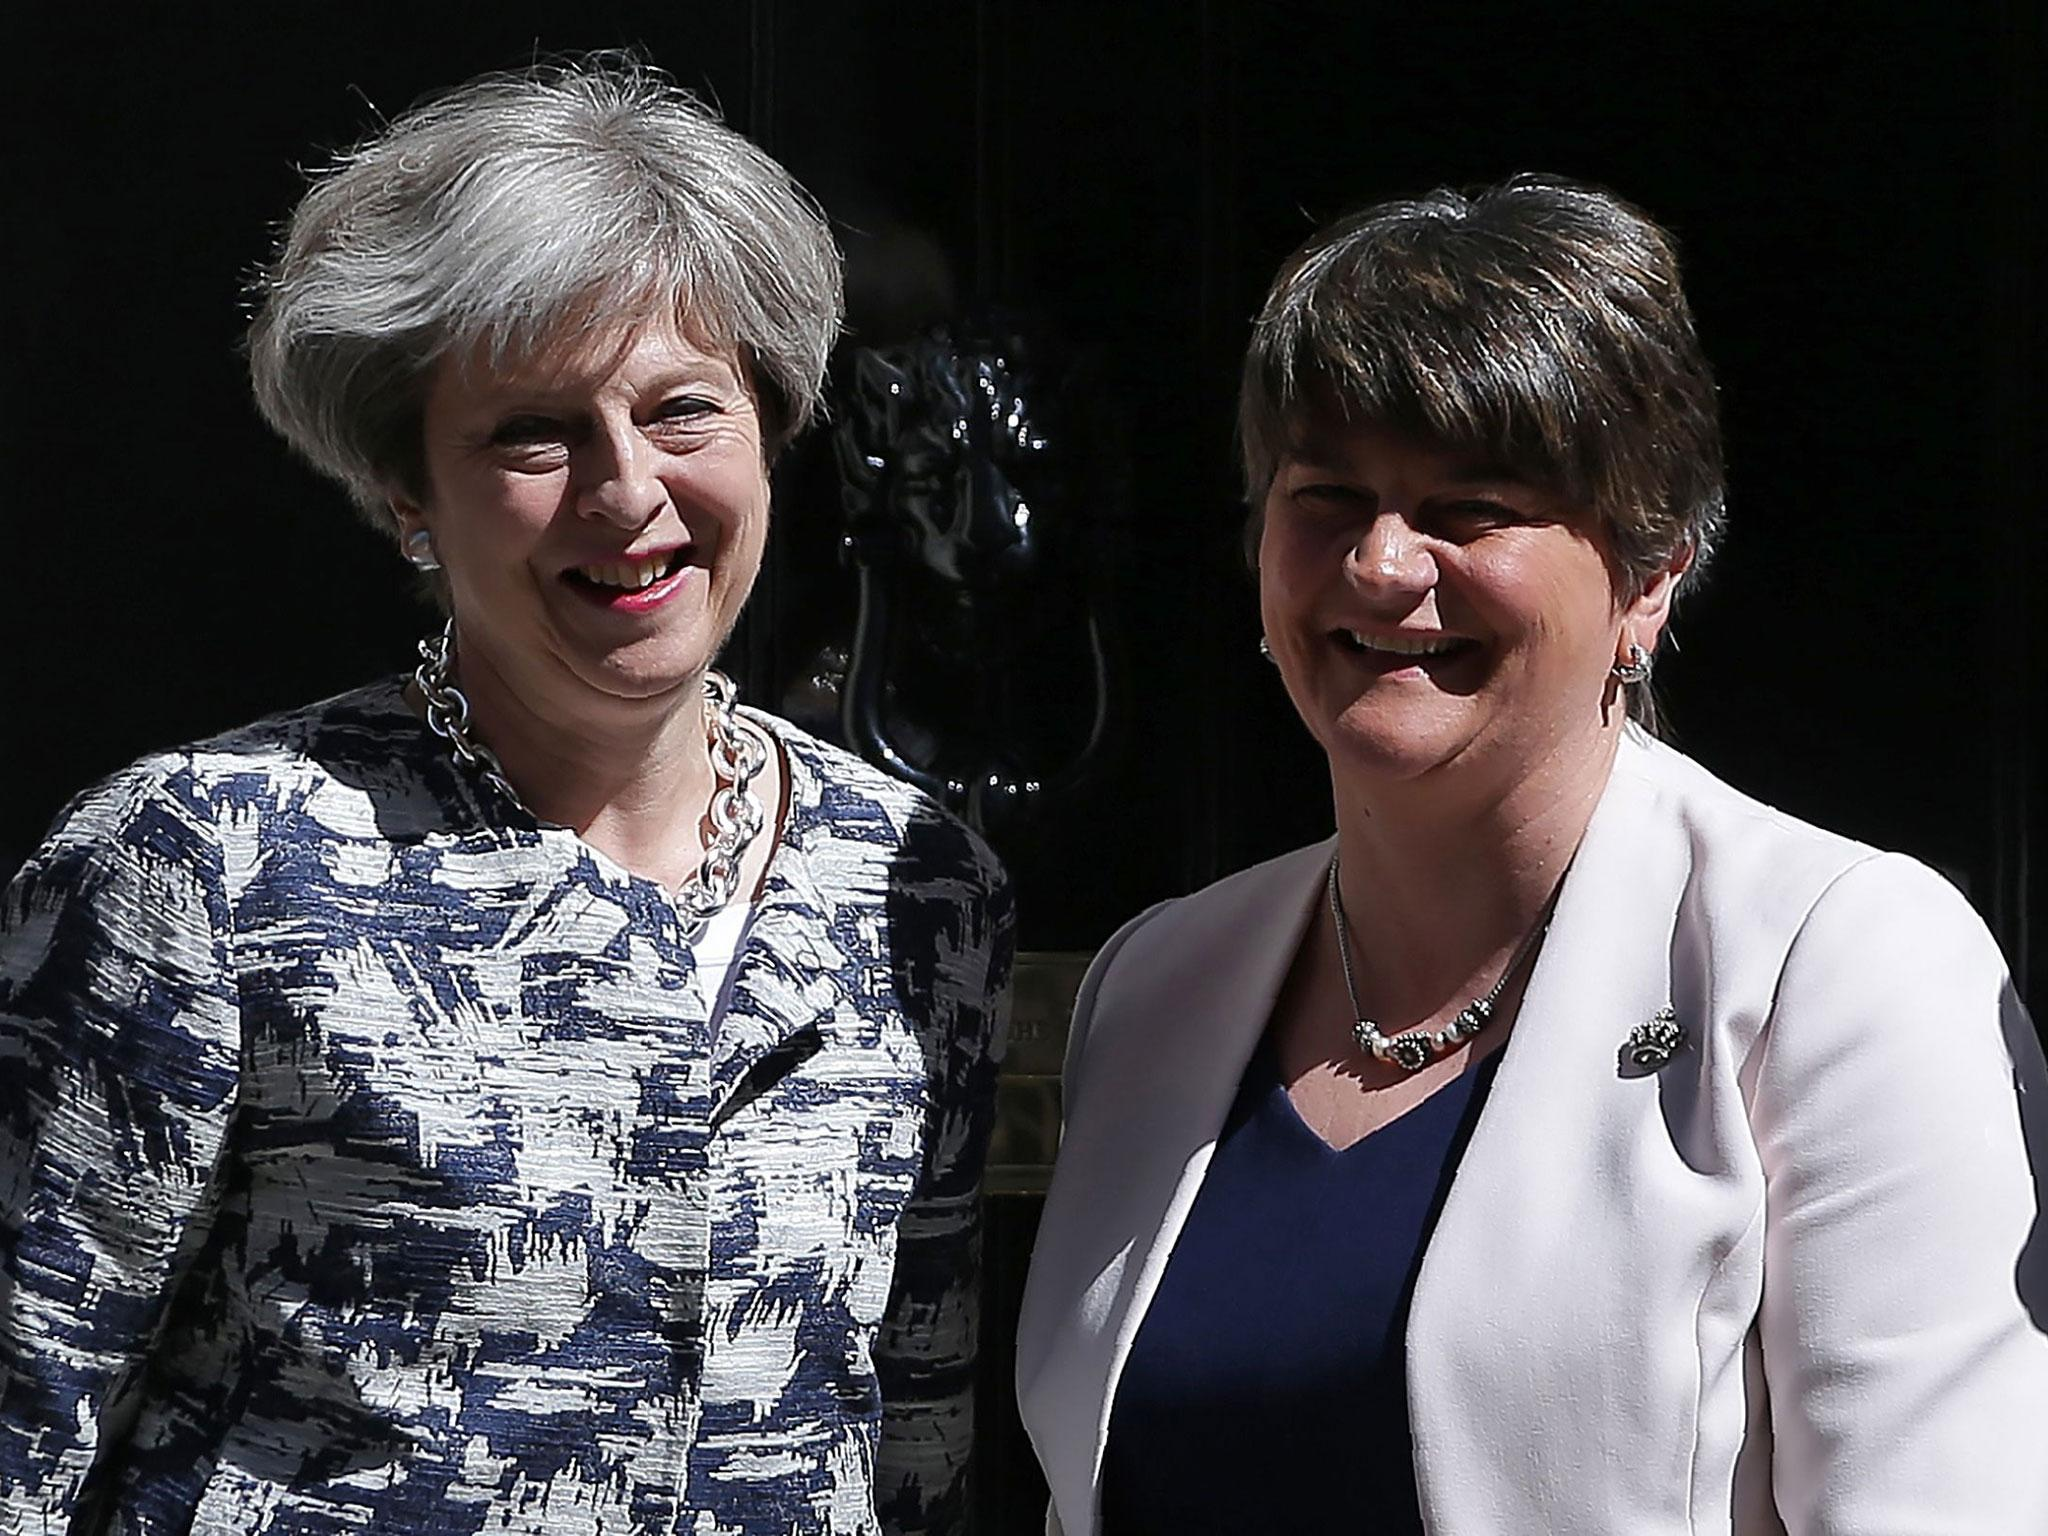 Deal struck with DUP to keep Theresa May in power with working majority